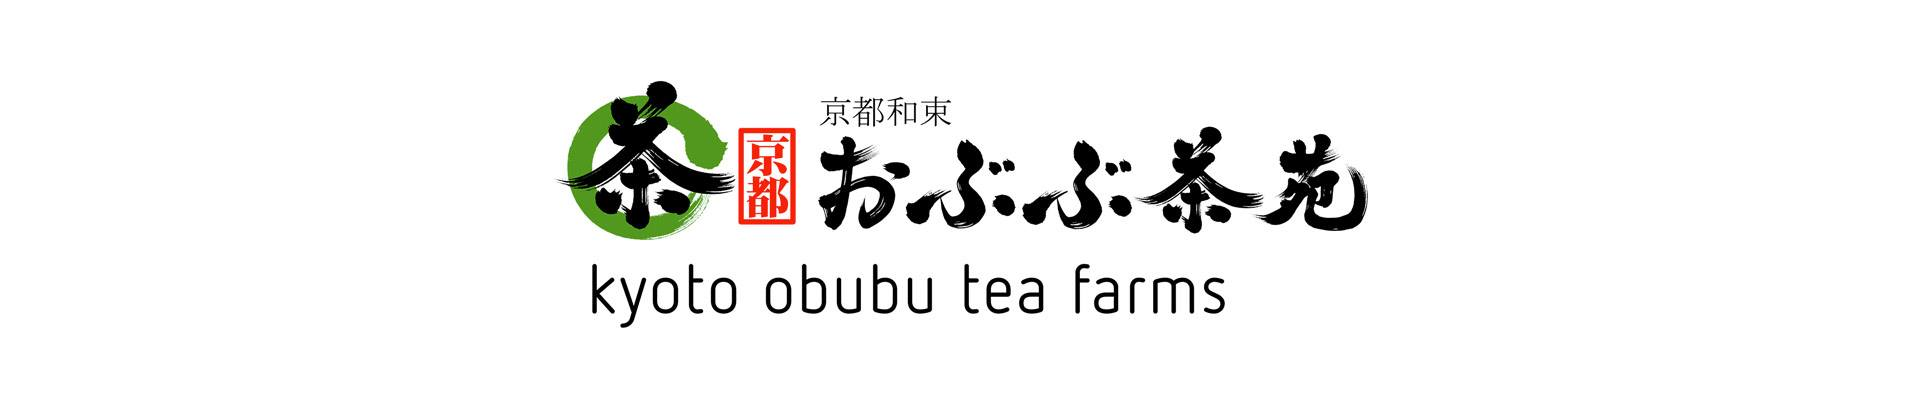 3 Settembre, tappa italiana del tour europeo di Obubu Tea Farm